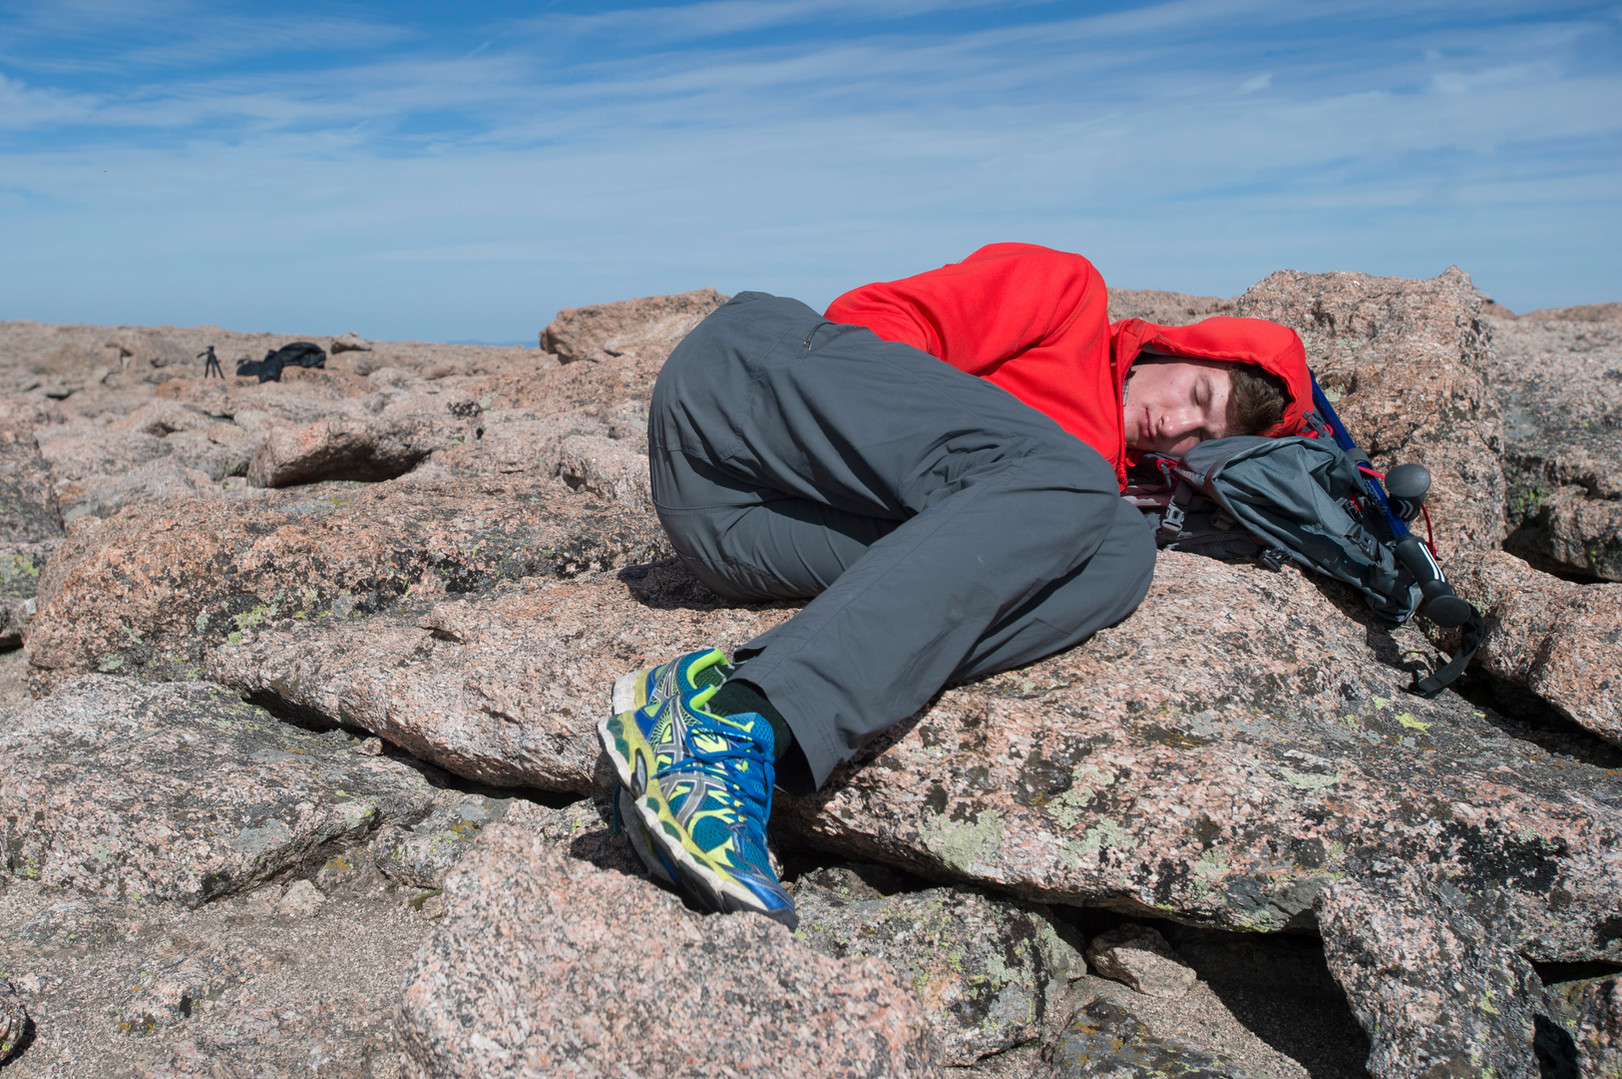 A climber finds a comfortable rock to take a nap on the summit of Longs Peak in Rocky Mountain National Park on Friday, July 19, 2017.